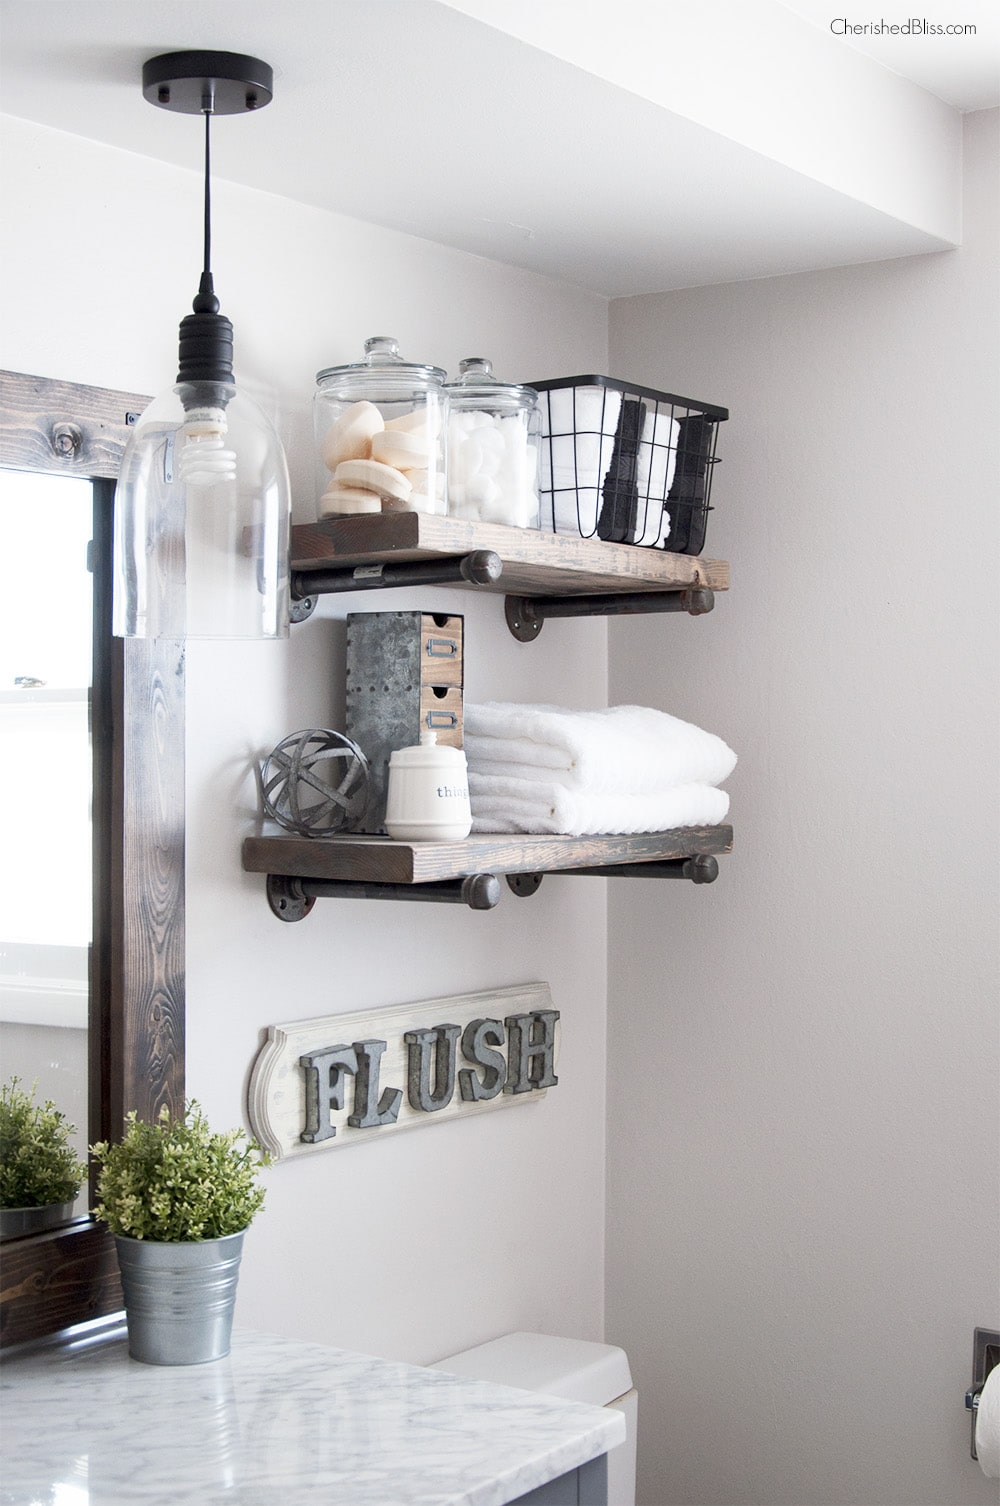 Budget Bathroom Updates: 5 Tips to Affordable Bathroom Makeovers ...